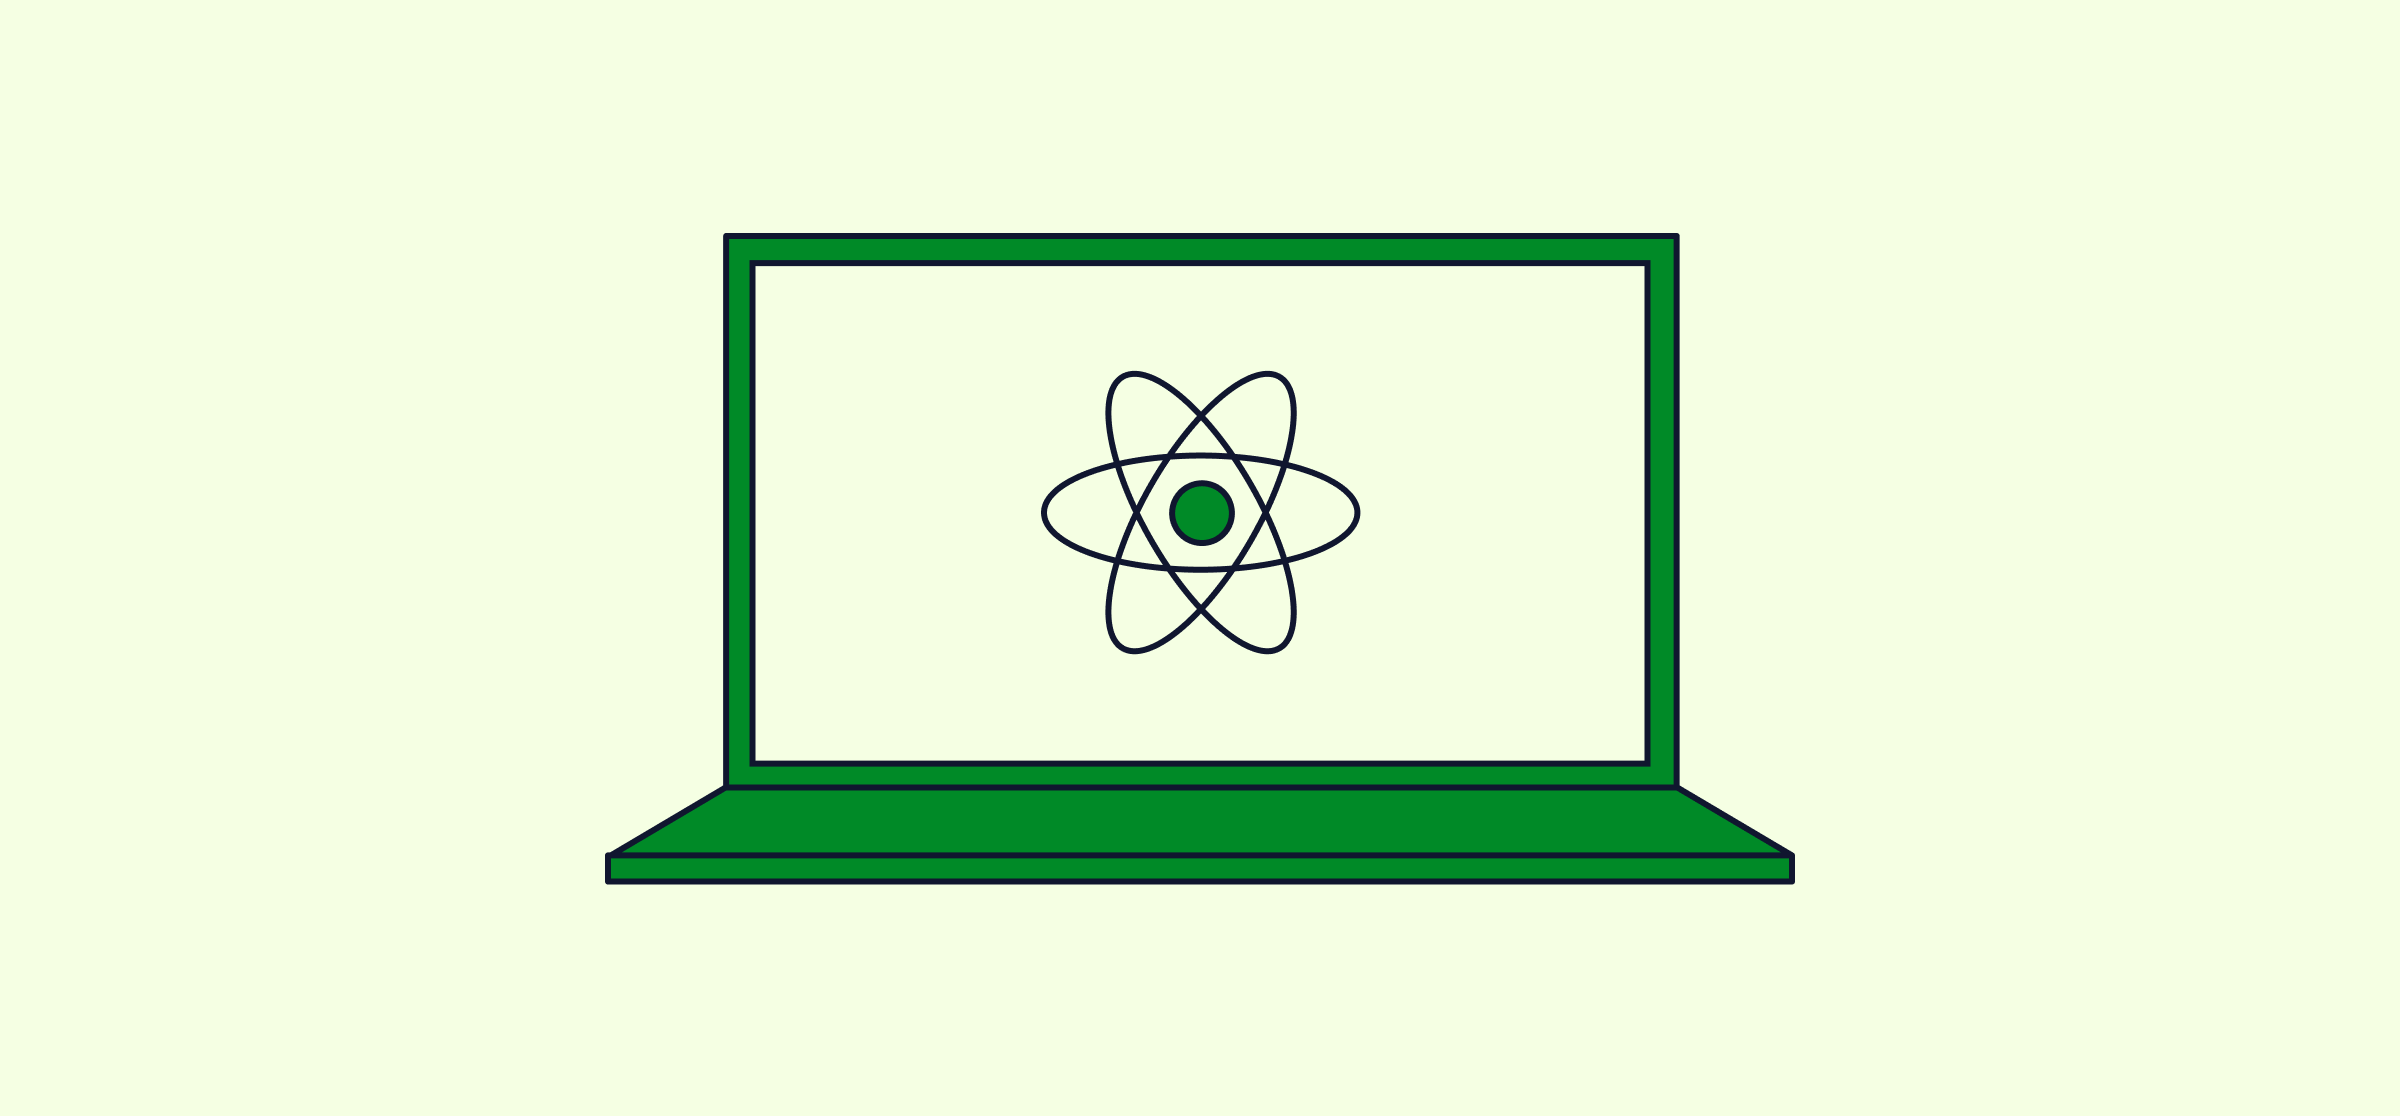 3 reasons to learn React (and how to get started)